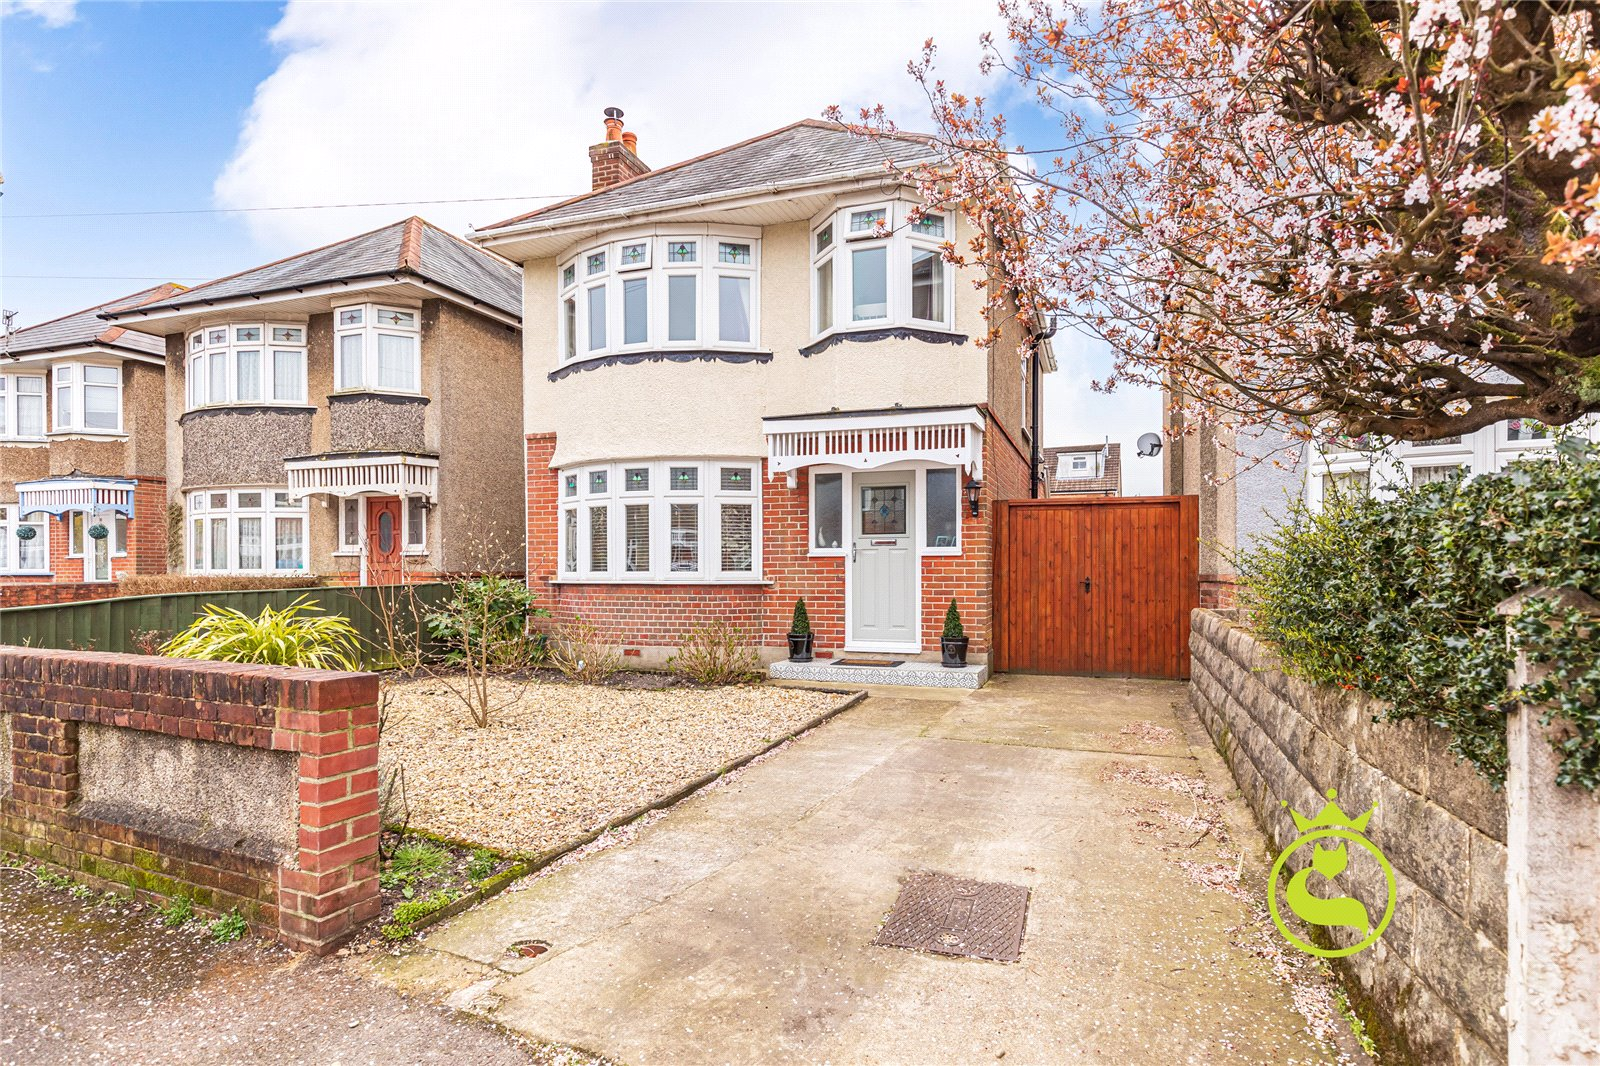 3 bed house for sale in Pearson Avenue, Lower Parkstone, BH14